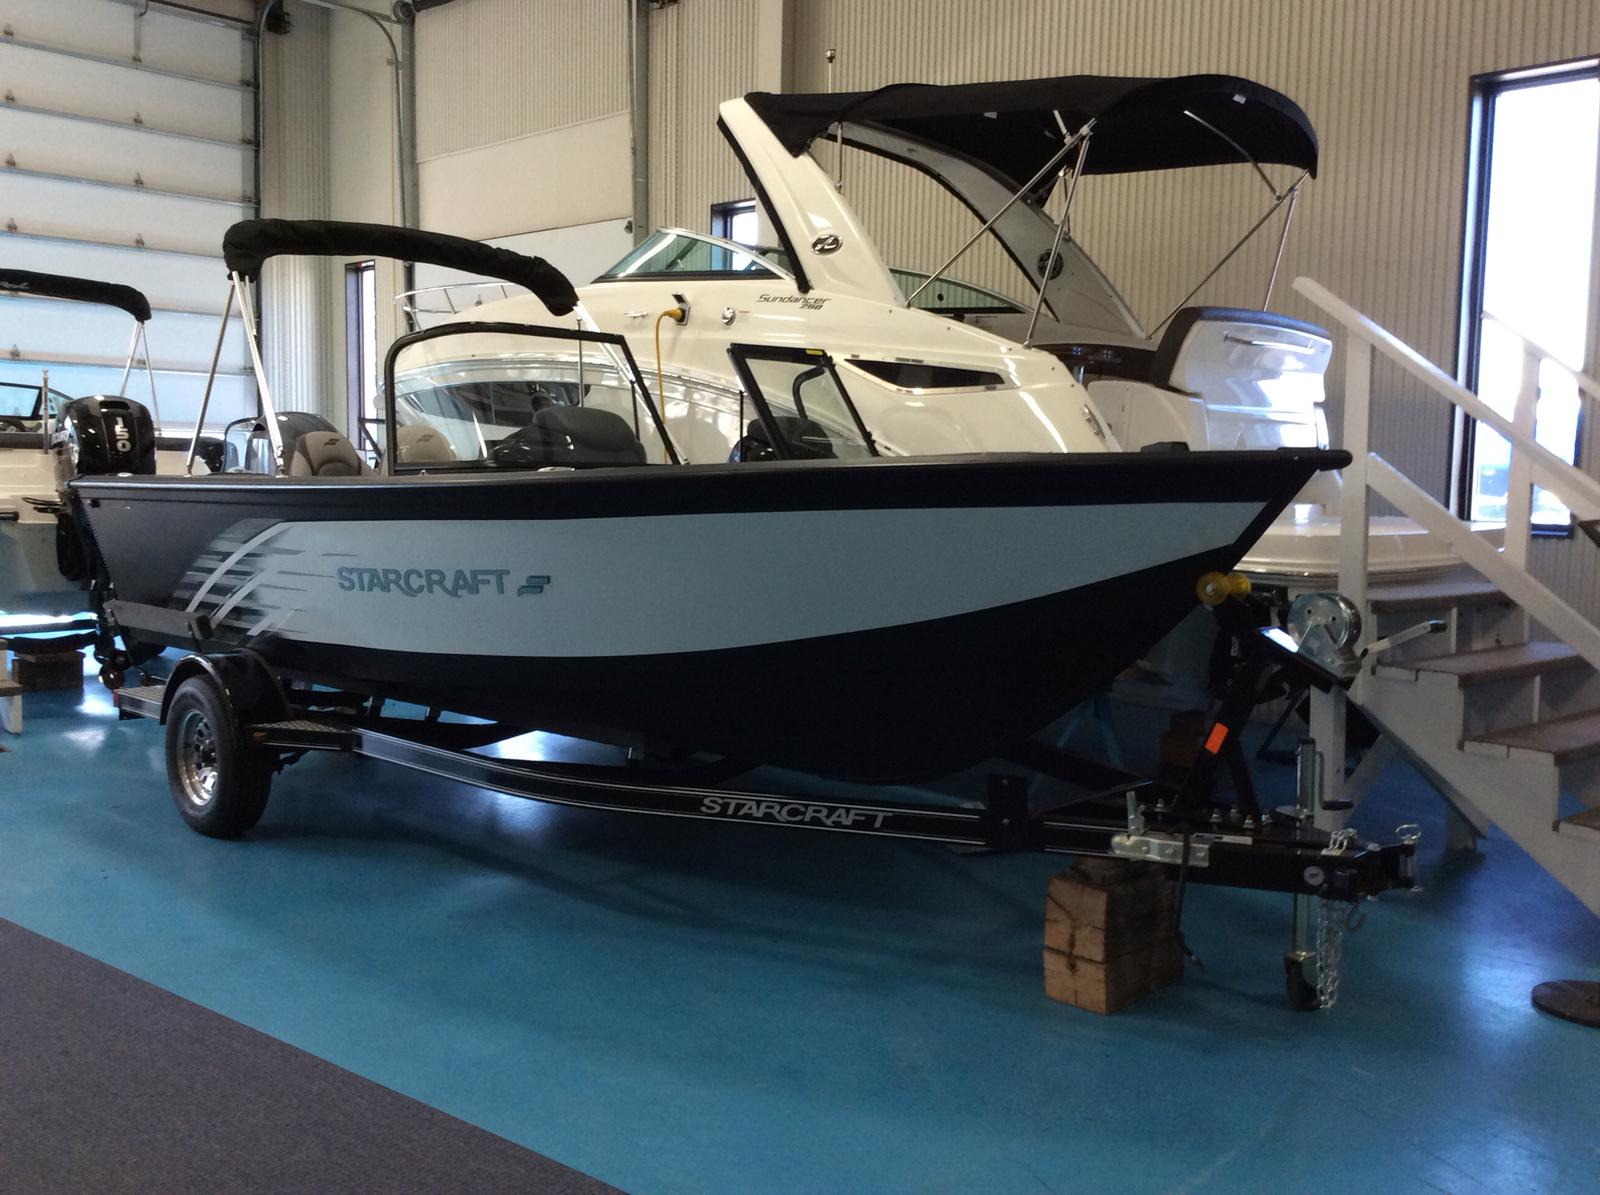 NEW 2016 Starcraft Titan 186 - Hutchinson's Boat Works